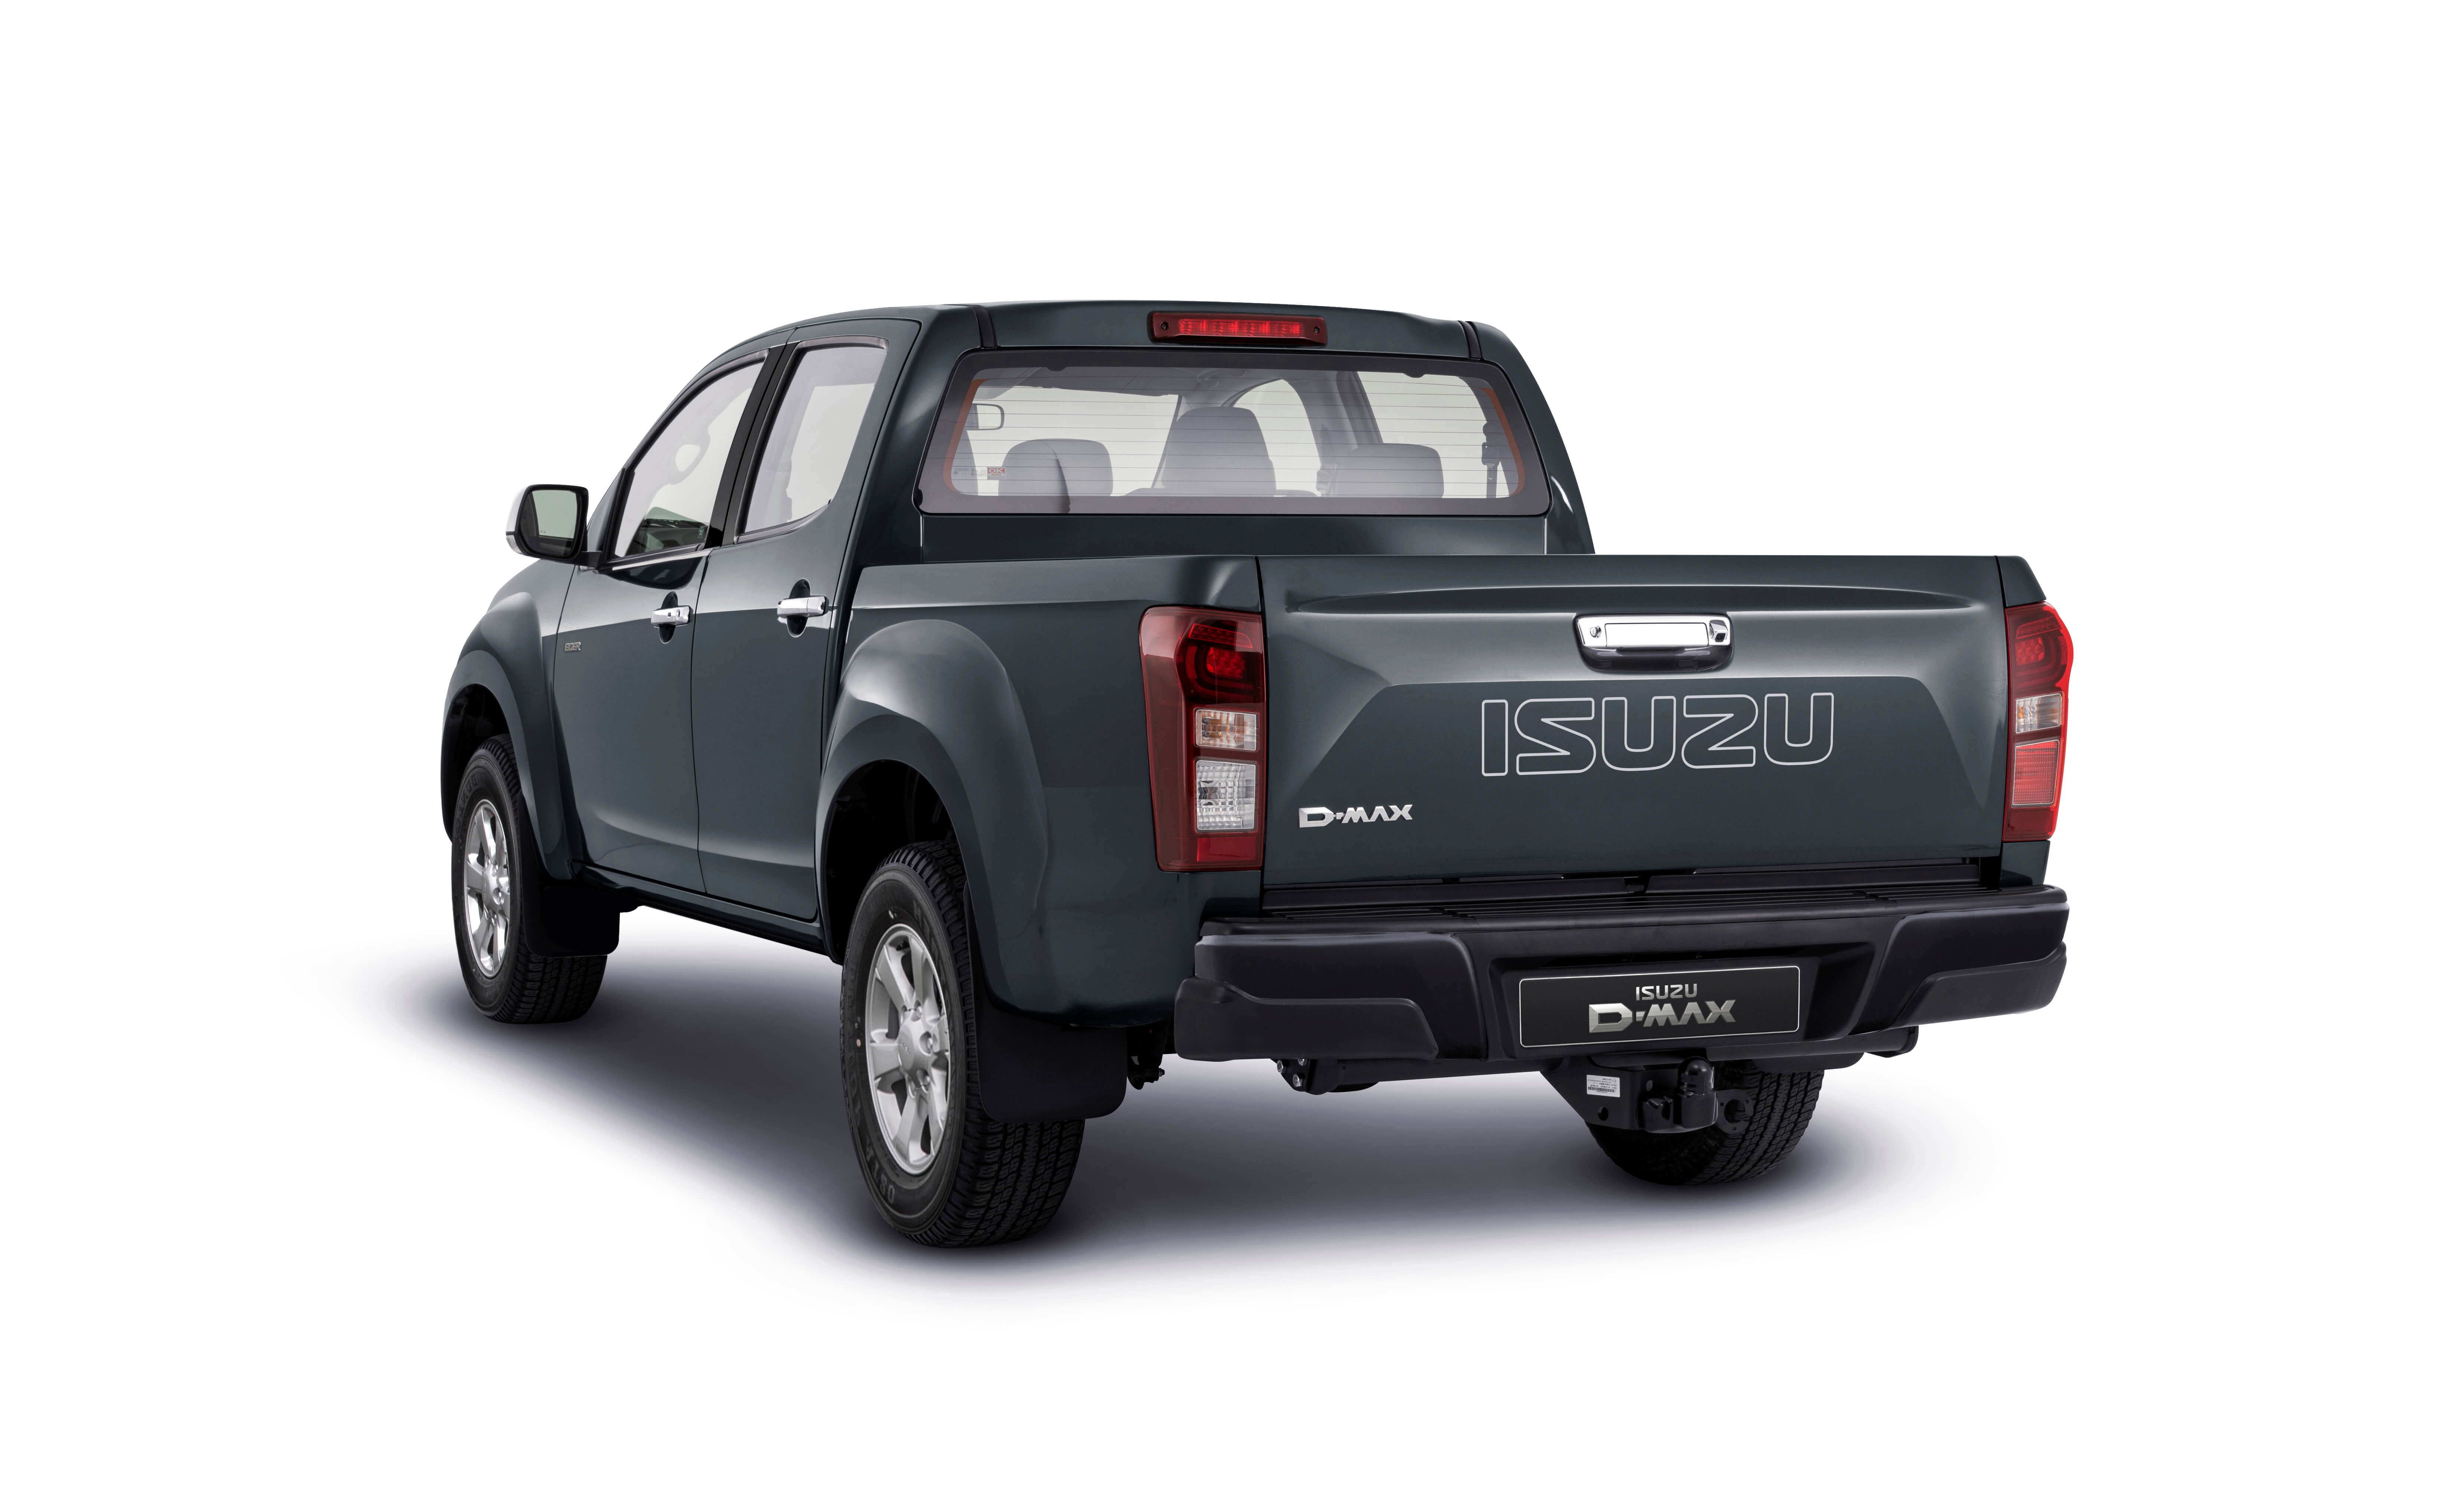 Isuzu D-Max Eiger rear view in grey